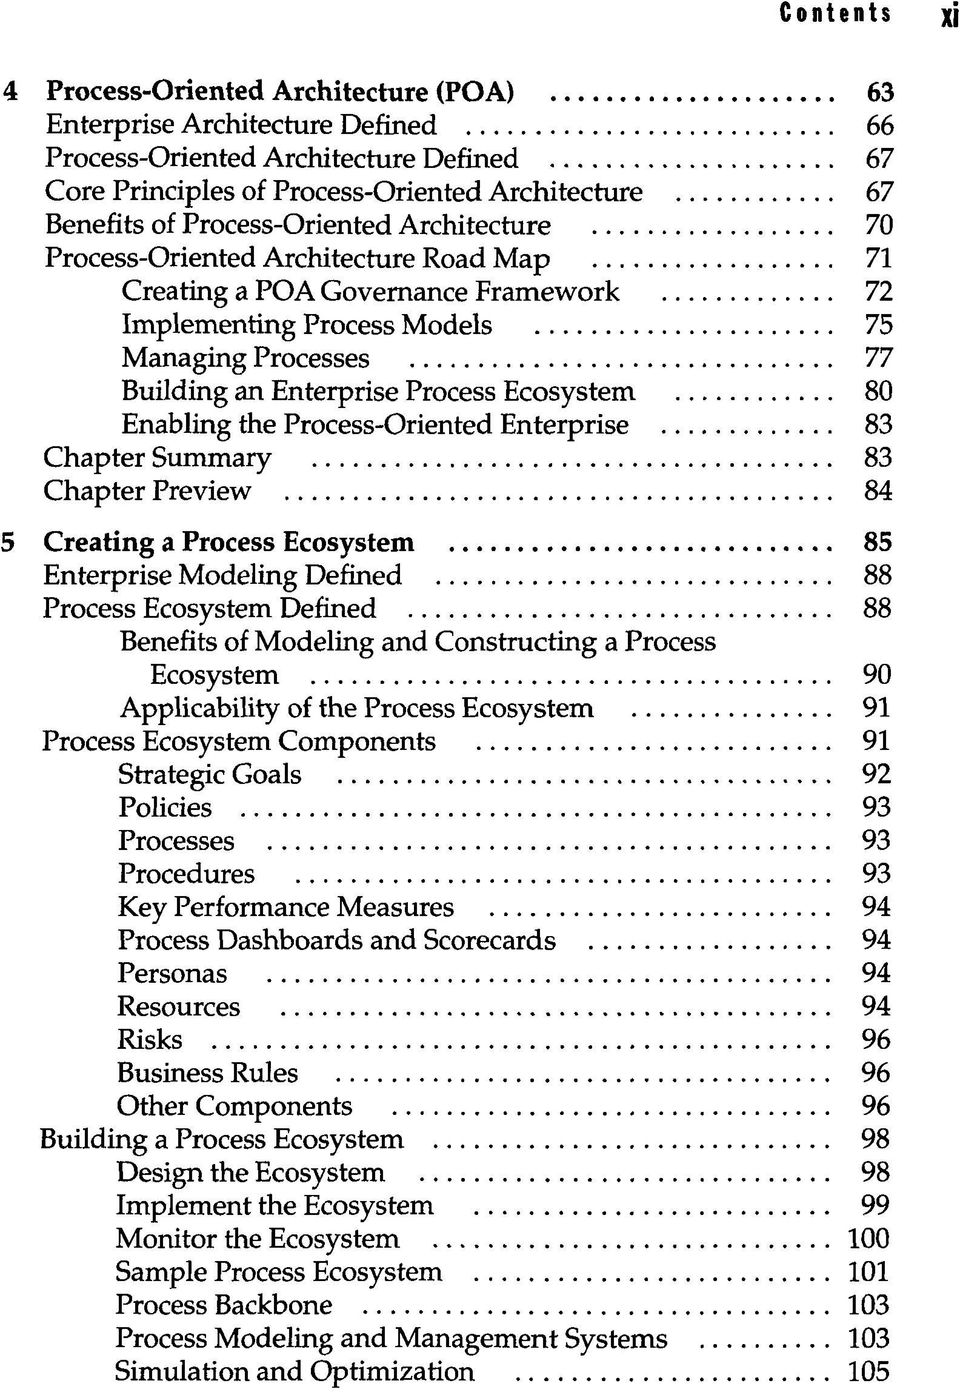 Ecosystem 80 Enabling the Process-Oriented Enterprise 83 Chapter Summary 83 Chapter Preview 84 5 Creating a Process Ecosystem 85 Enterprise Modeling Defined 88 Process Ecosystem Defined 88 Benefits